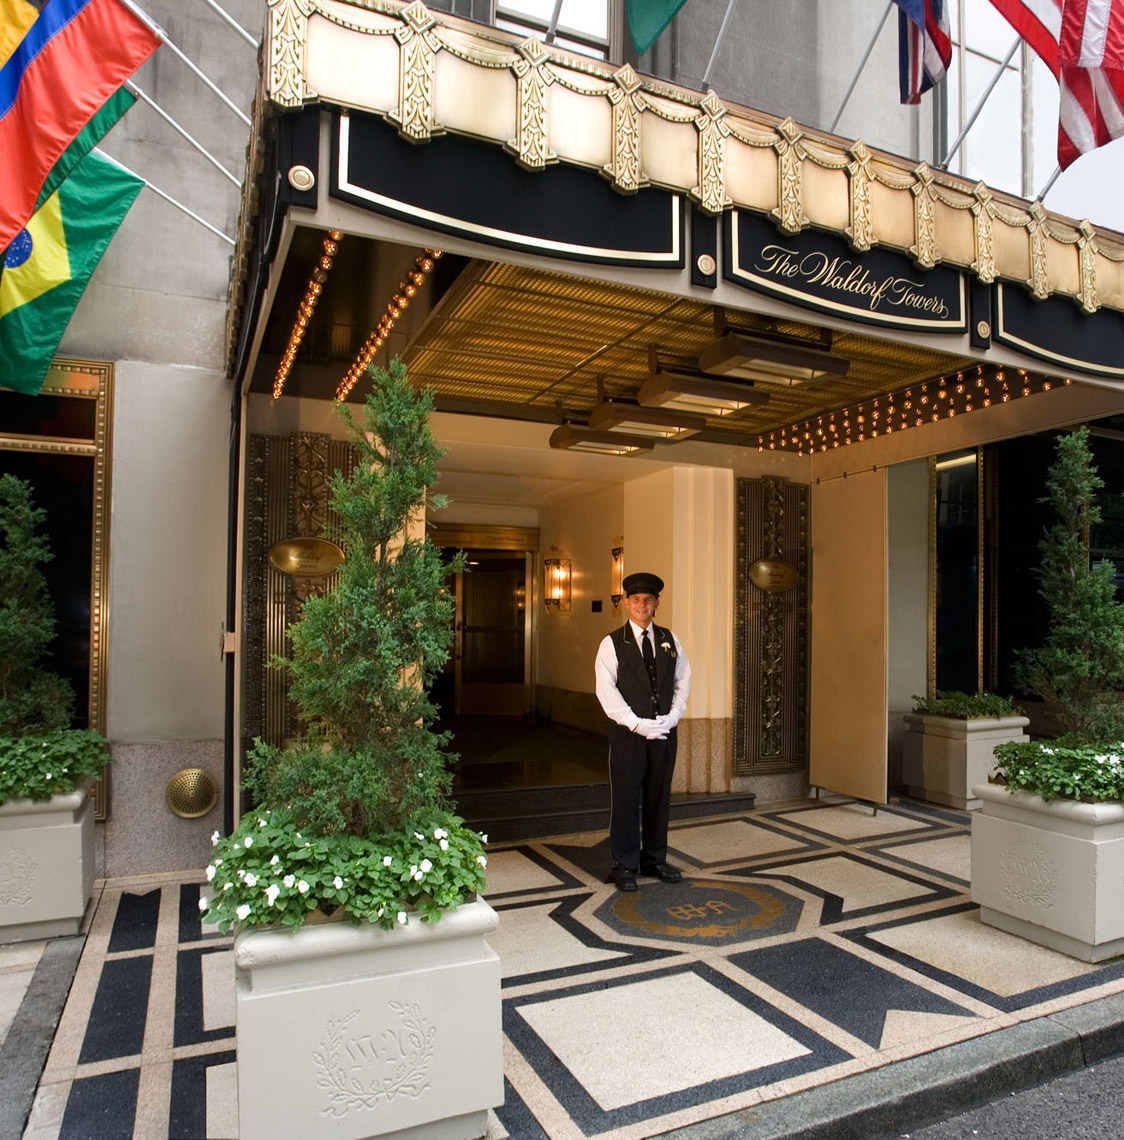 Waldorf Towers Entrance, Architecture by Kenneth E. Hurd & Associates